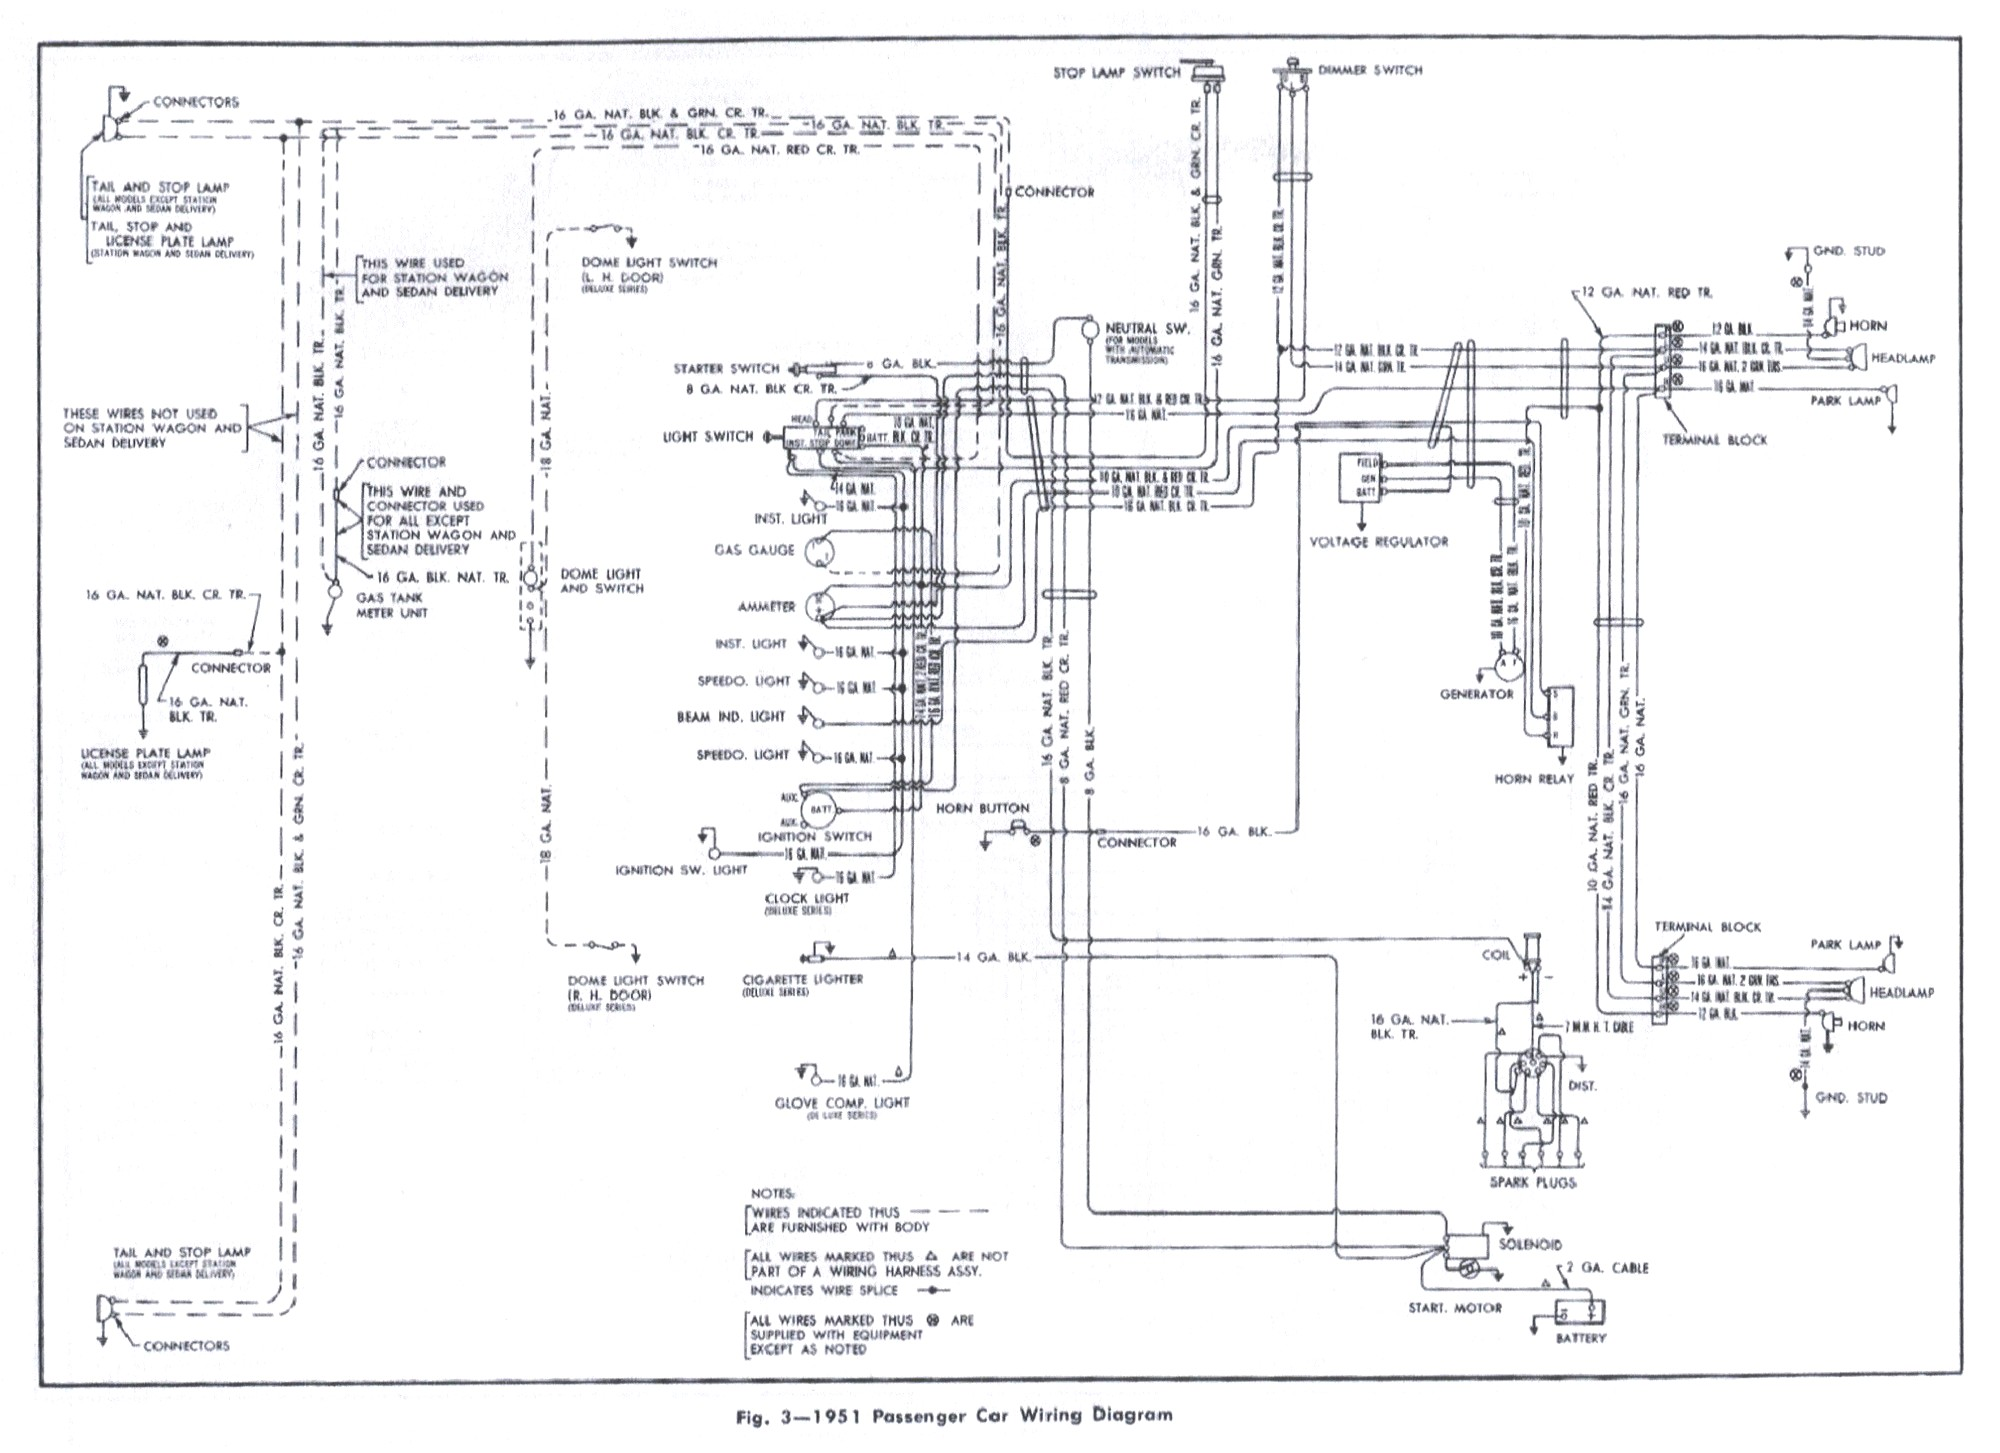 2000 s10 wiring diagram wiring diagram and schematic design anyone have a tail light wiring diagram 1998 2 2l pickup s 10 forum wiring diagrams for 2000 chevy s10